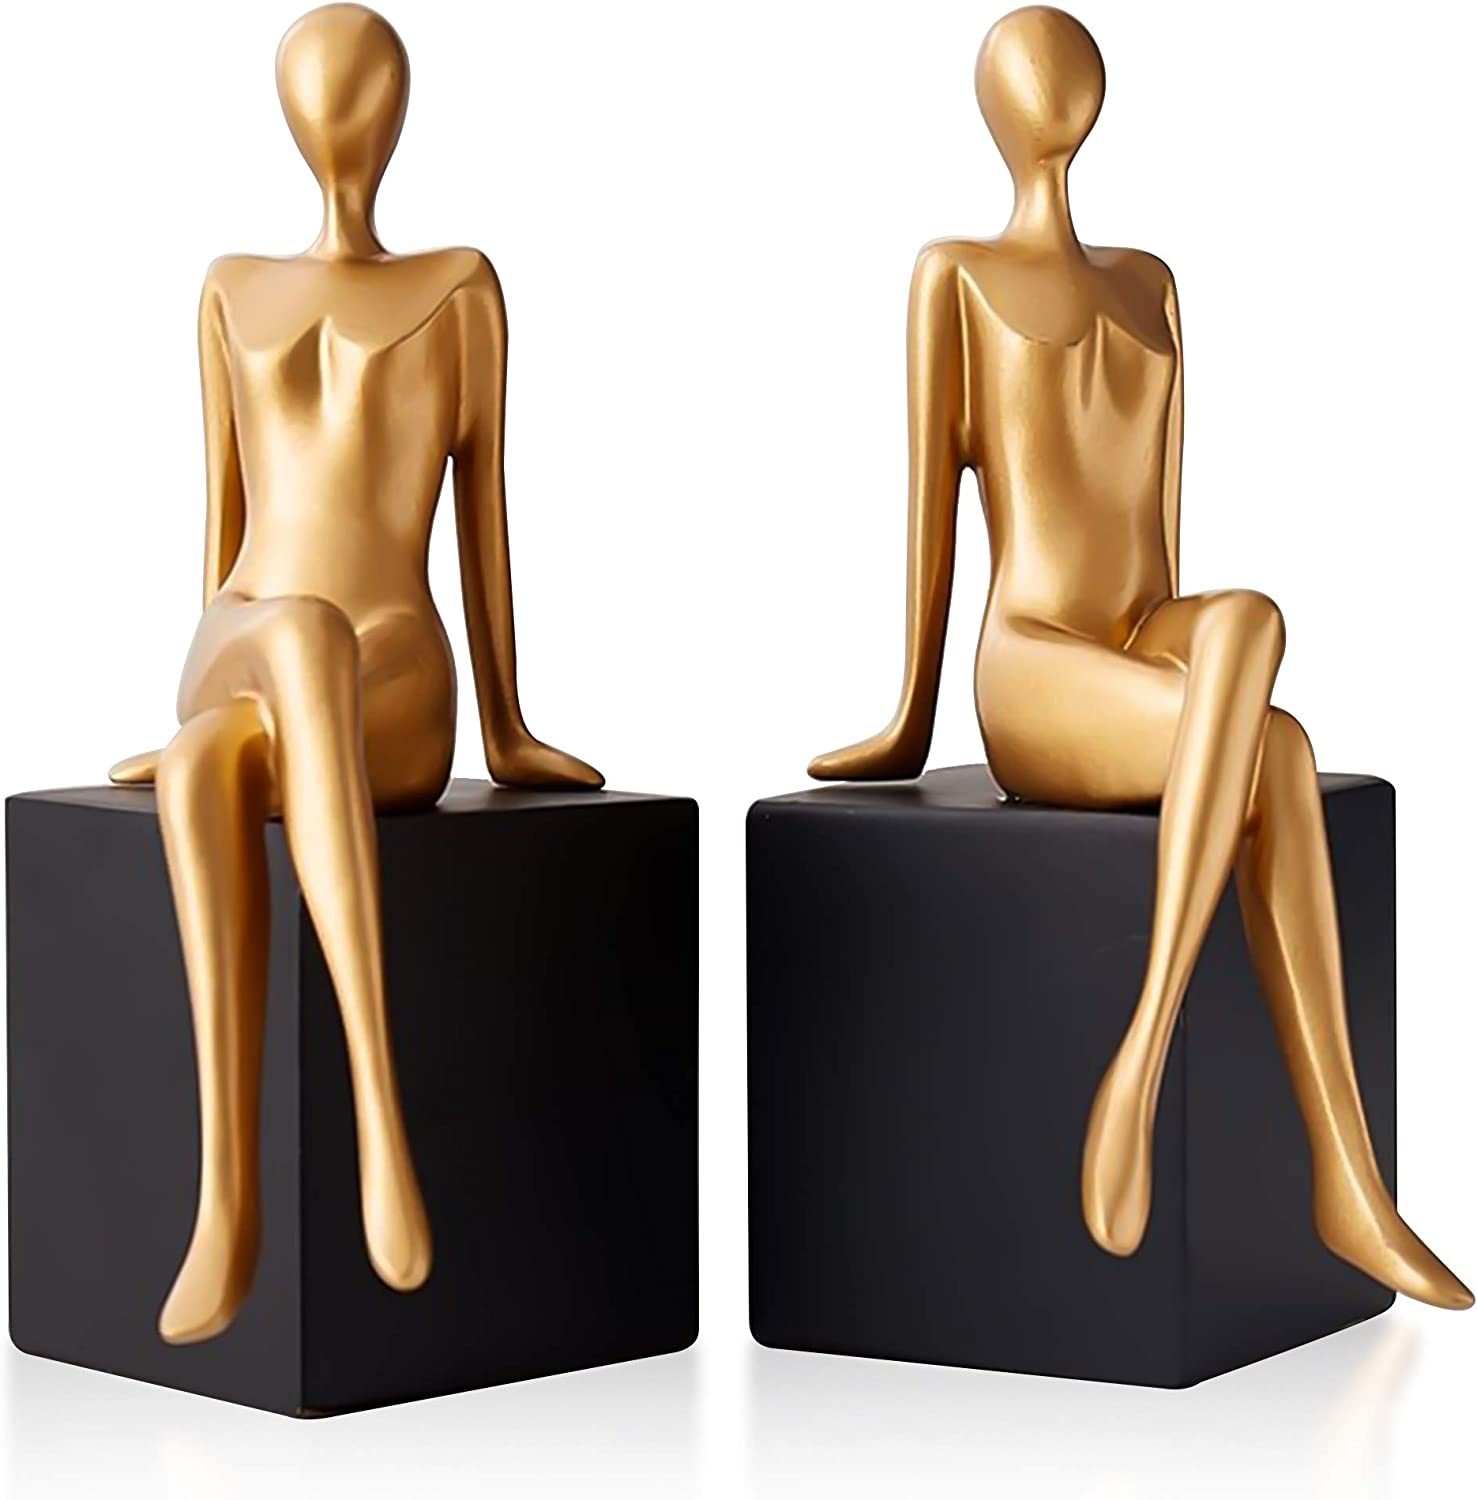 Modern Girl Statues Decorative Bookend Set. Add Modern Touch to Any Shelf or Table with These Unique Art of Confident Girl Statues. Use Them as Bookends Or Décor to Your Home and Office Modern Vibe!